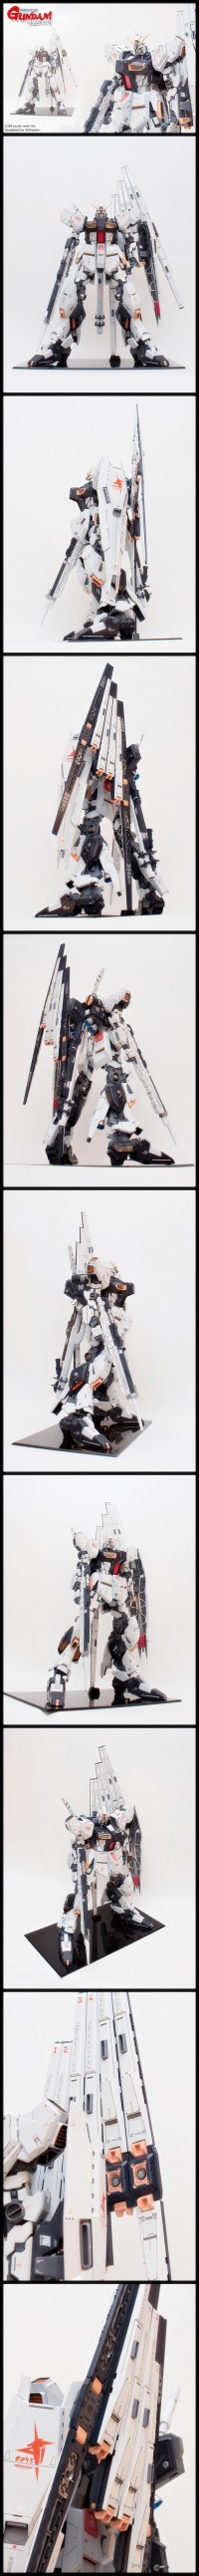 1/48 NU-GUNDAM | The Plastic Figure World